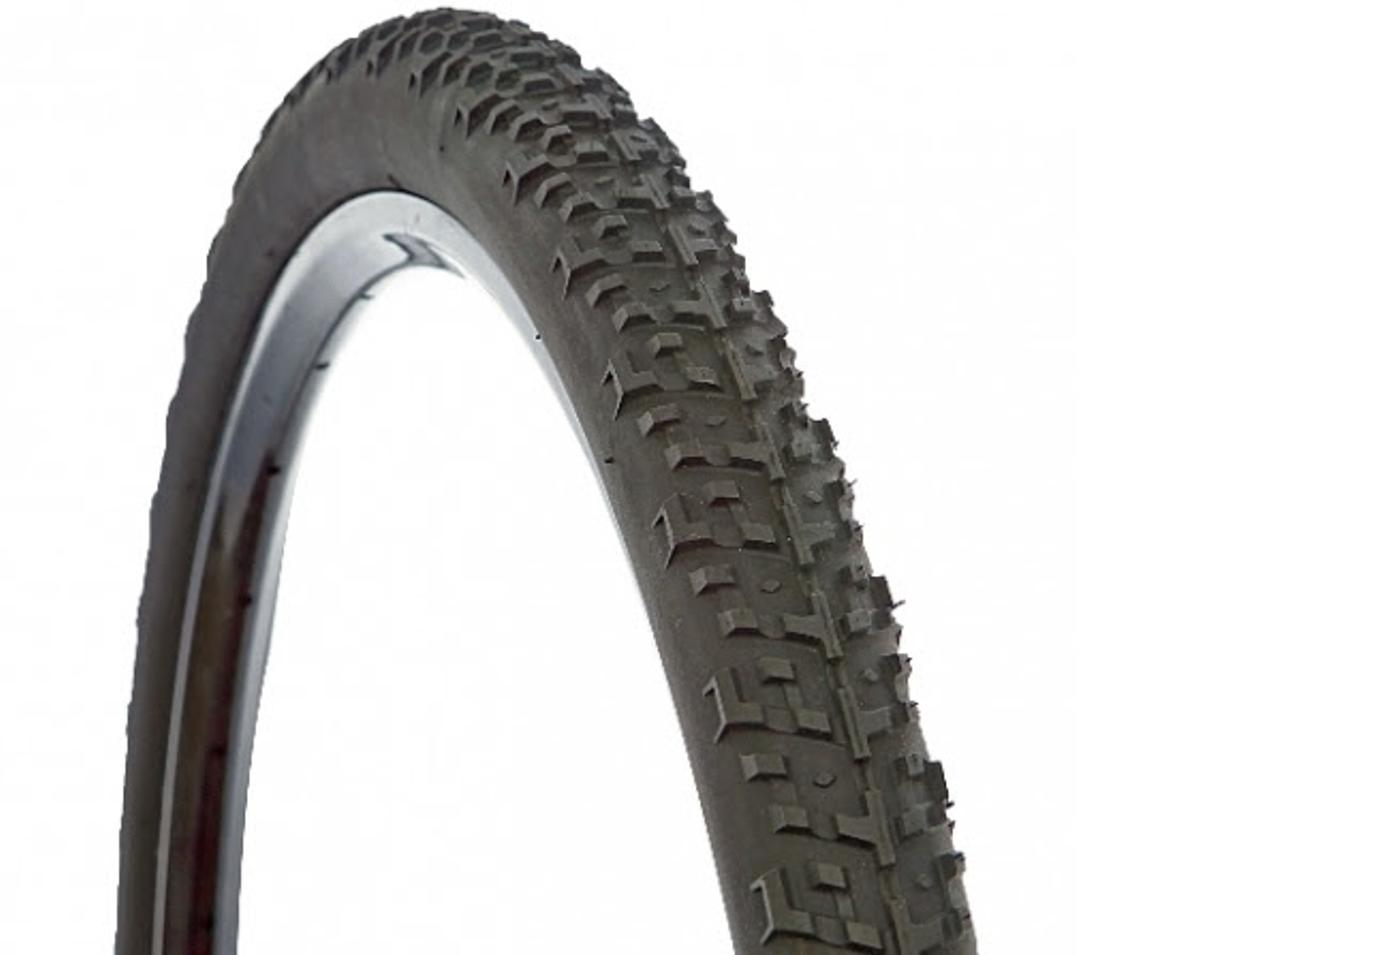 WTB's New Nano 40c Tire Looks Cushy